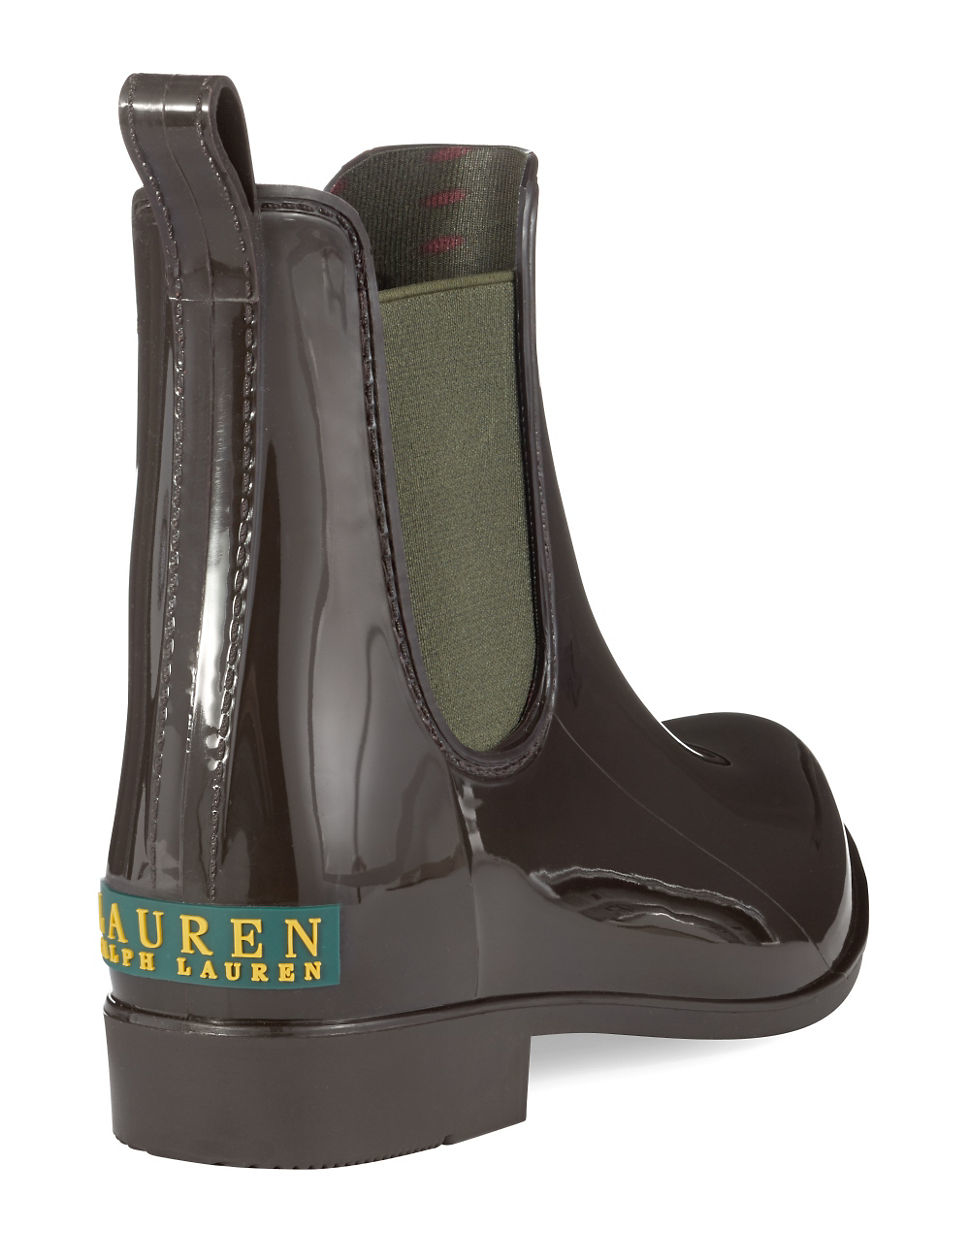 Lauren by ralph lauren Tally Rain Boots in Brown | Lyst